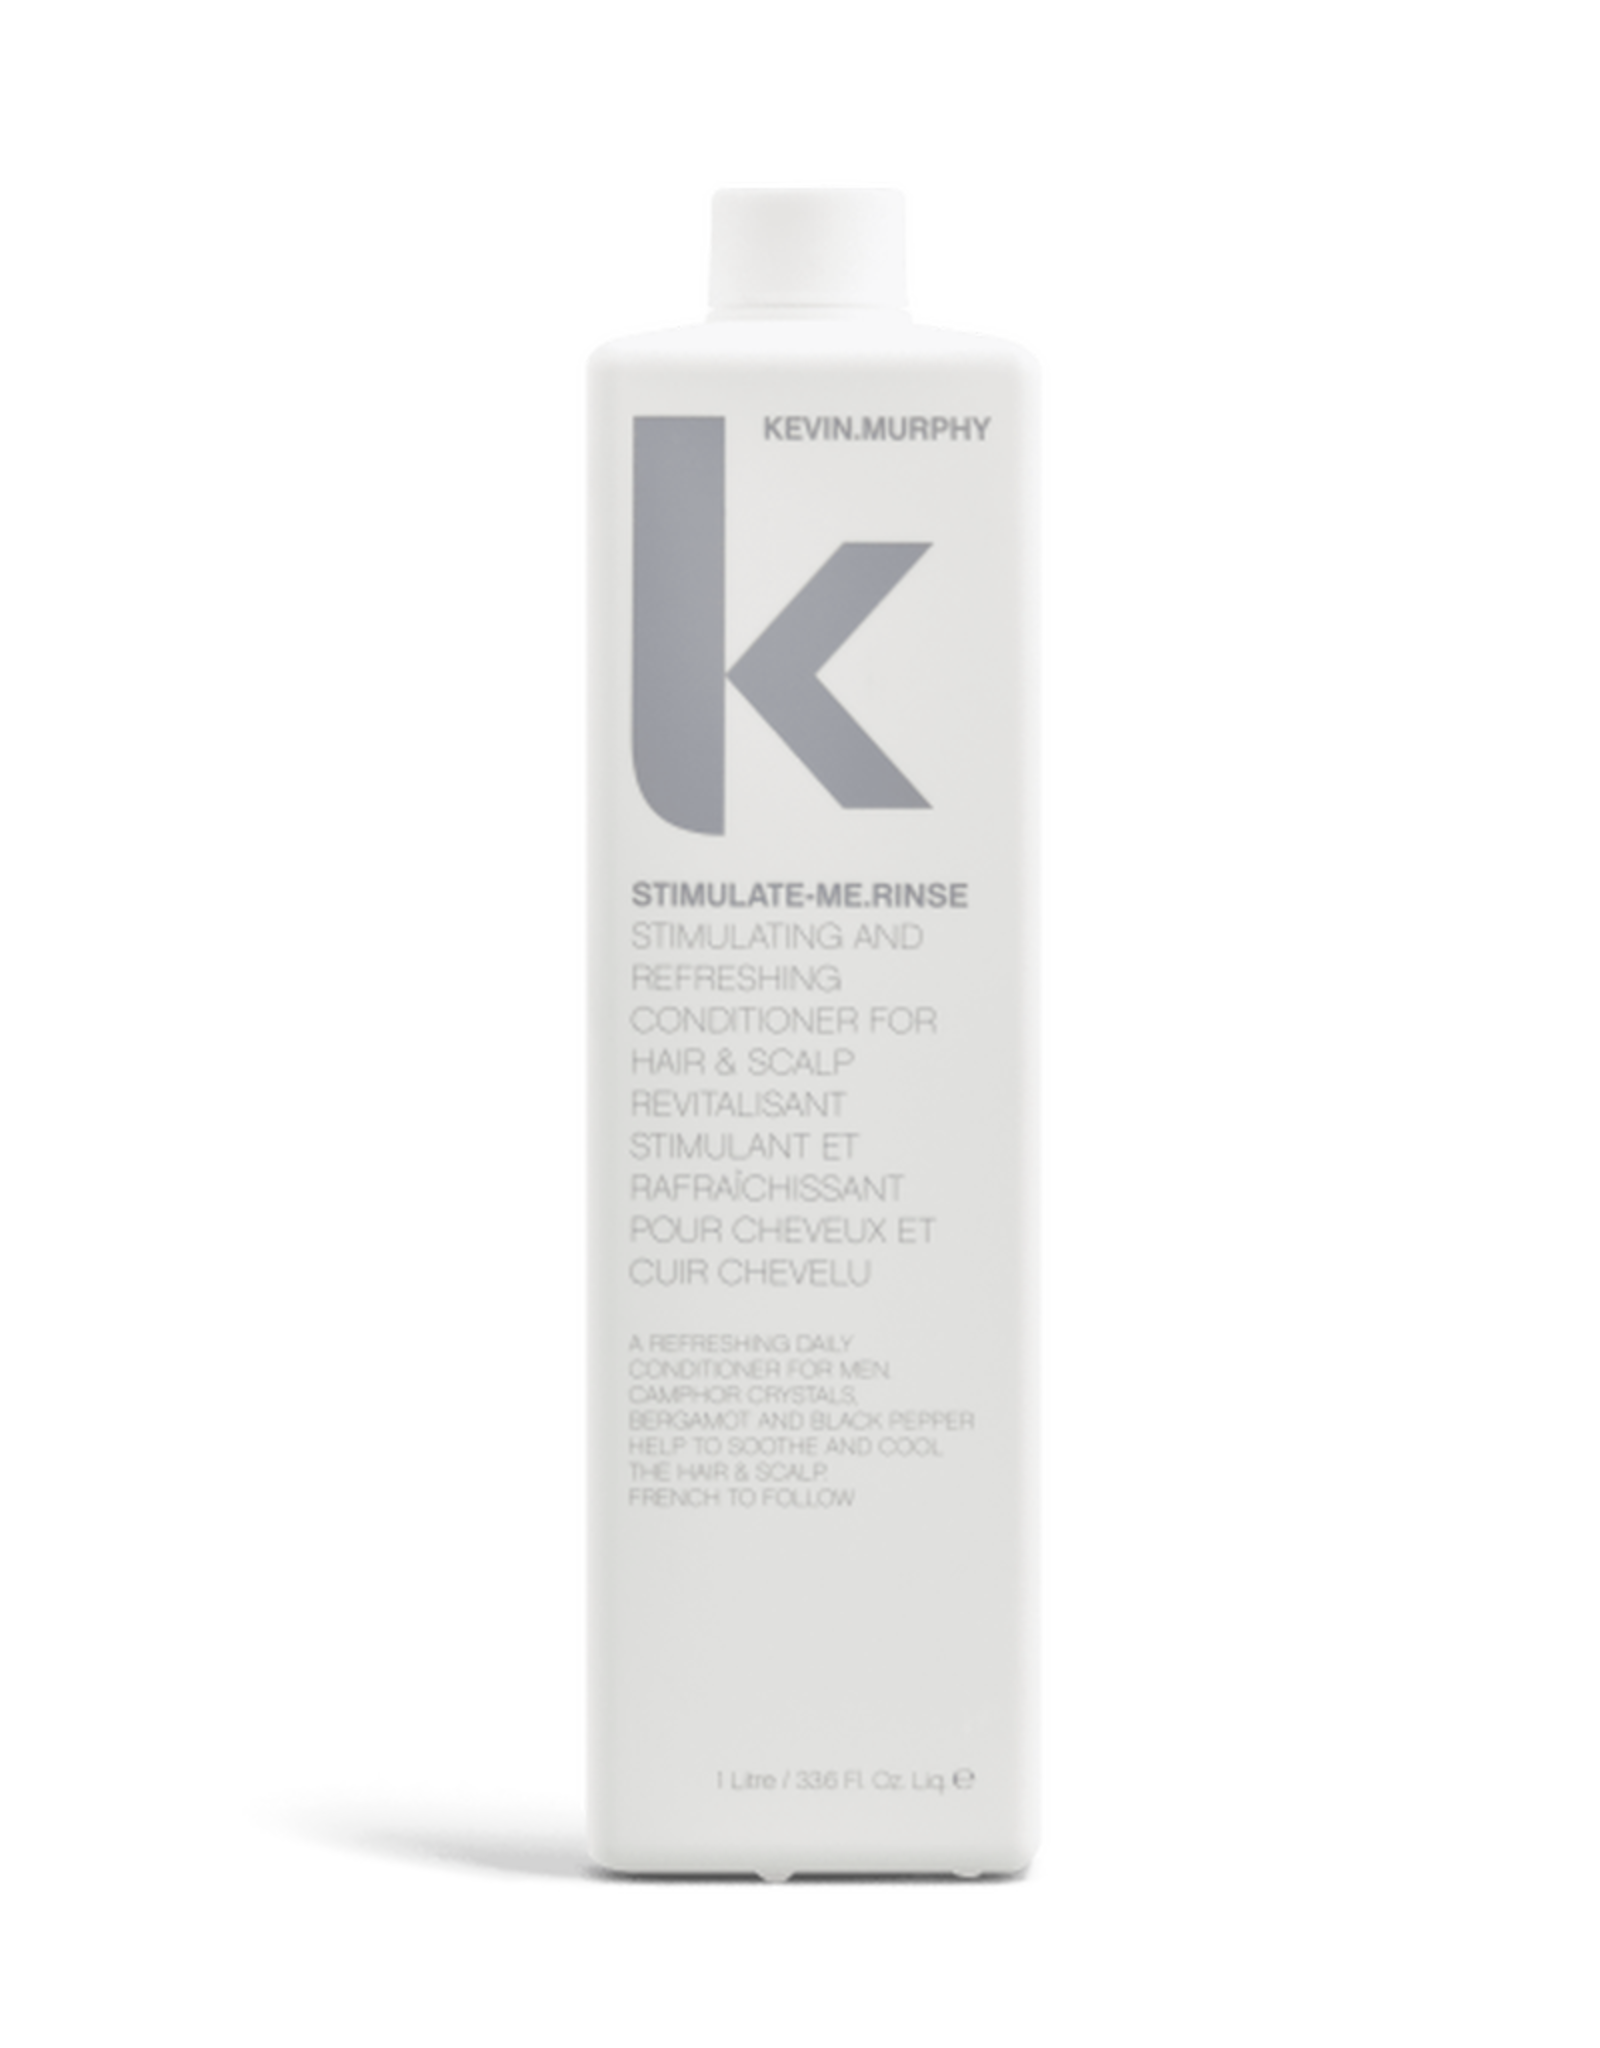 KEVIN.MURPHY Stimulate-Me.Rinse (Litre)